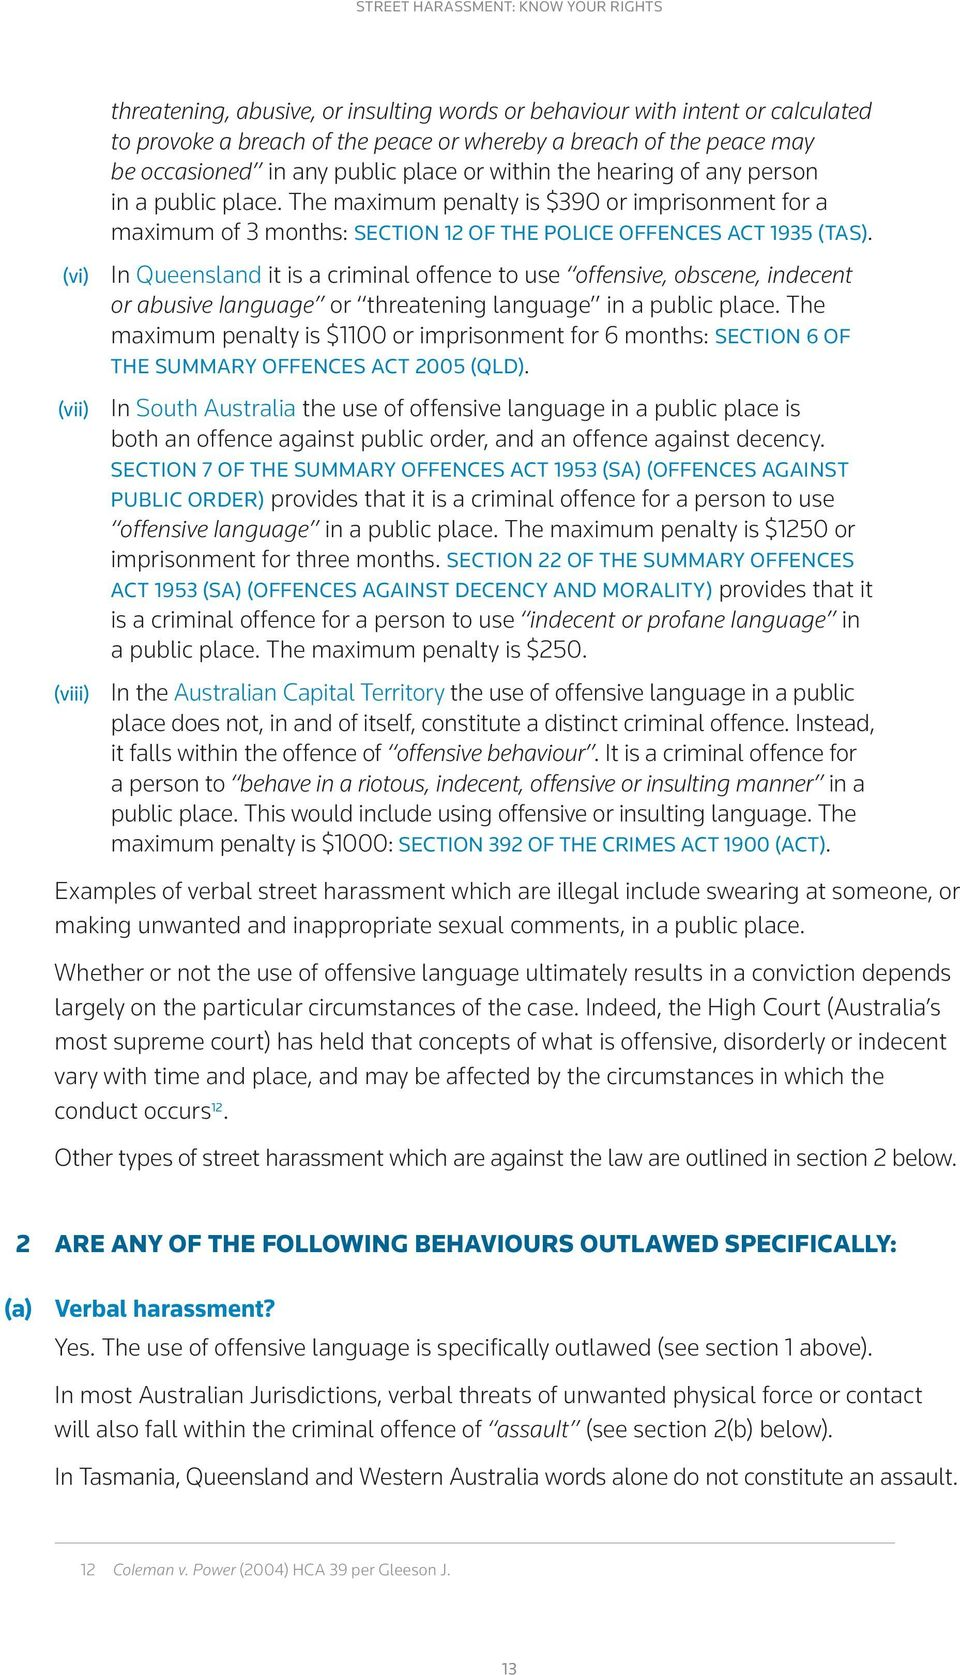 In Queensland it is a criminal offence to use offensive, obscene, indecent or abusive language or threatening language in a public place.